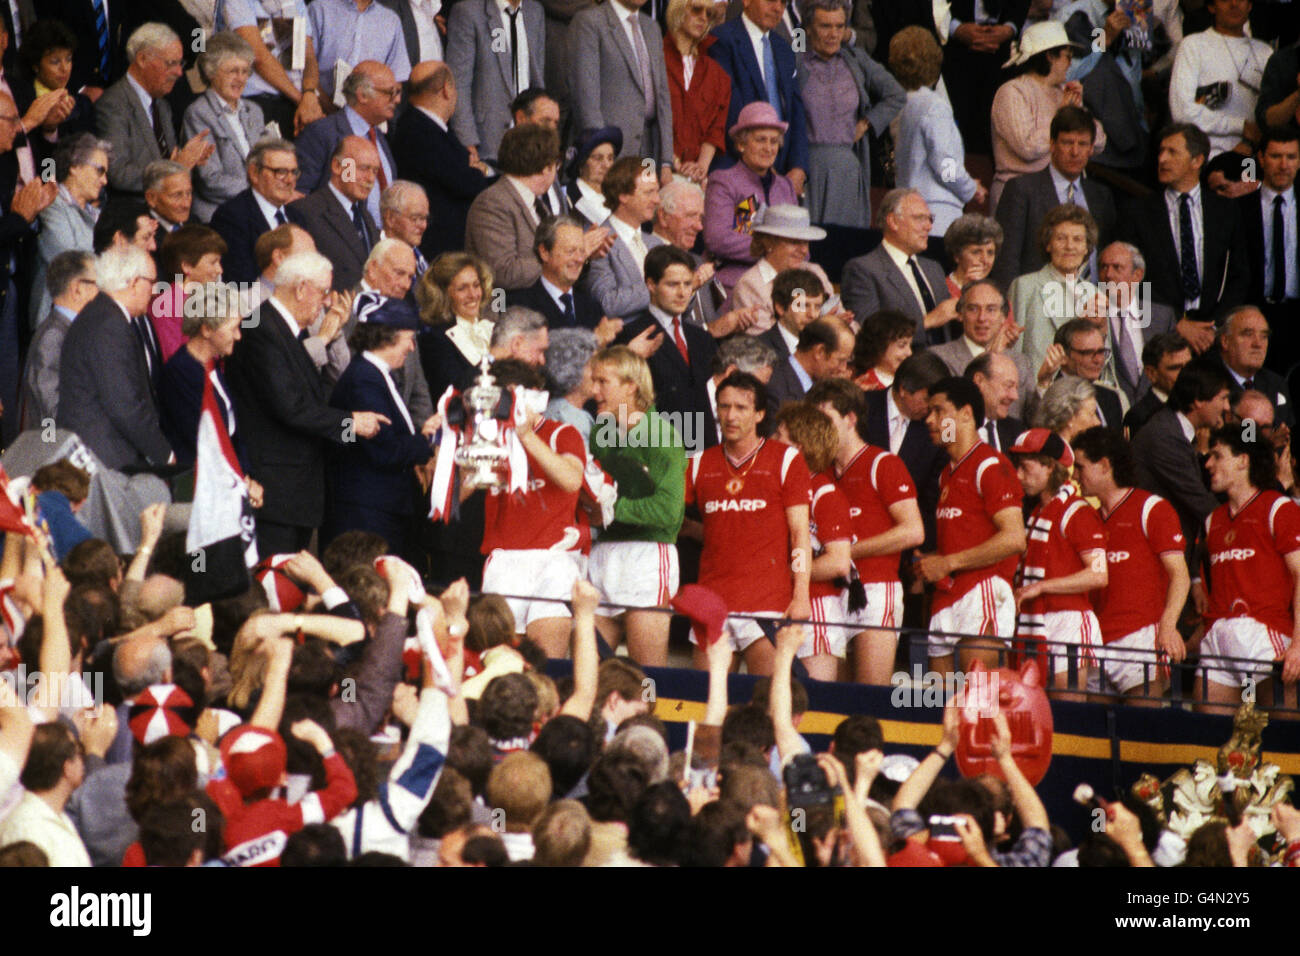 Soccer - FA Cup Final - Everton v Manchester United - Wembley Stadium - Stock Image